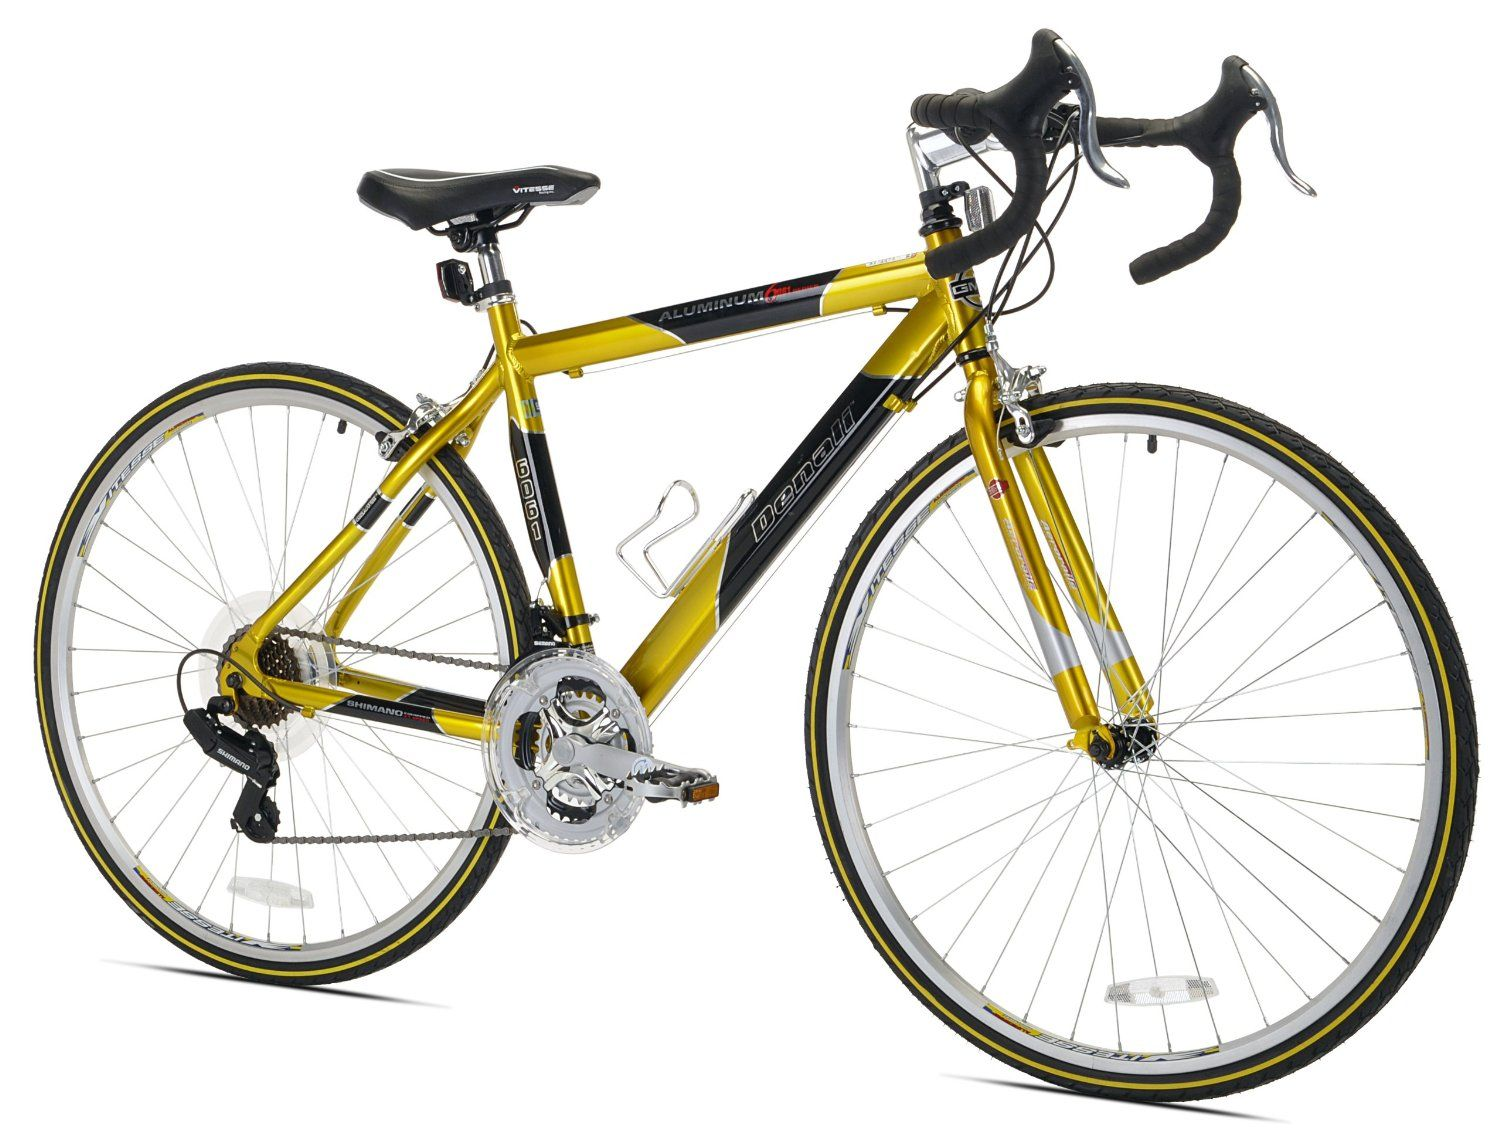 Gmc Denali Men S Road Bike Is Designed For The Everyday Rider Looking Value And Performance Bike Bike Reviews Bicycle